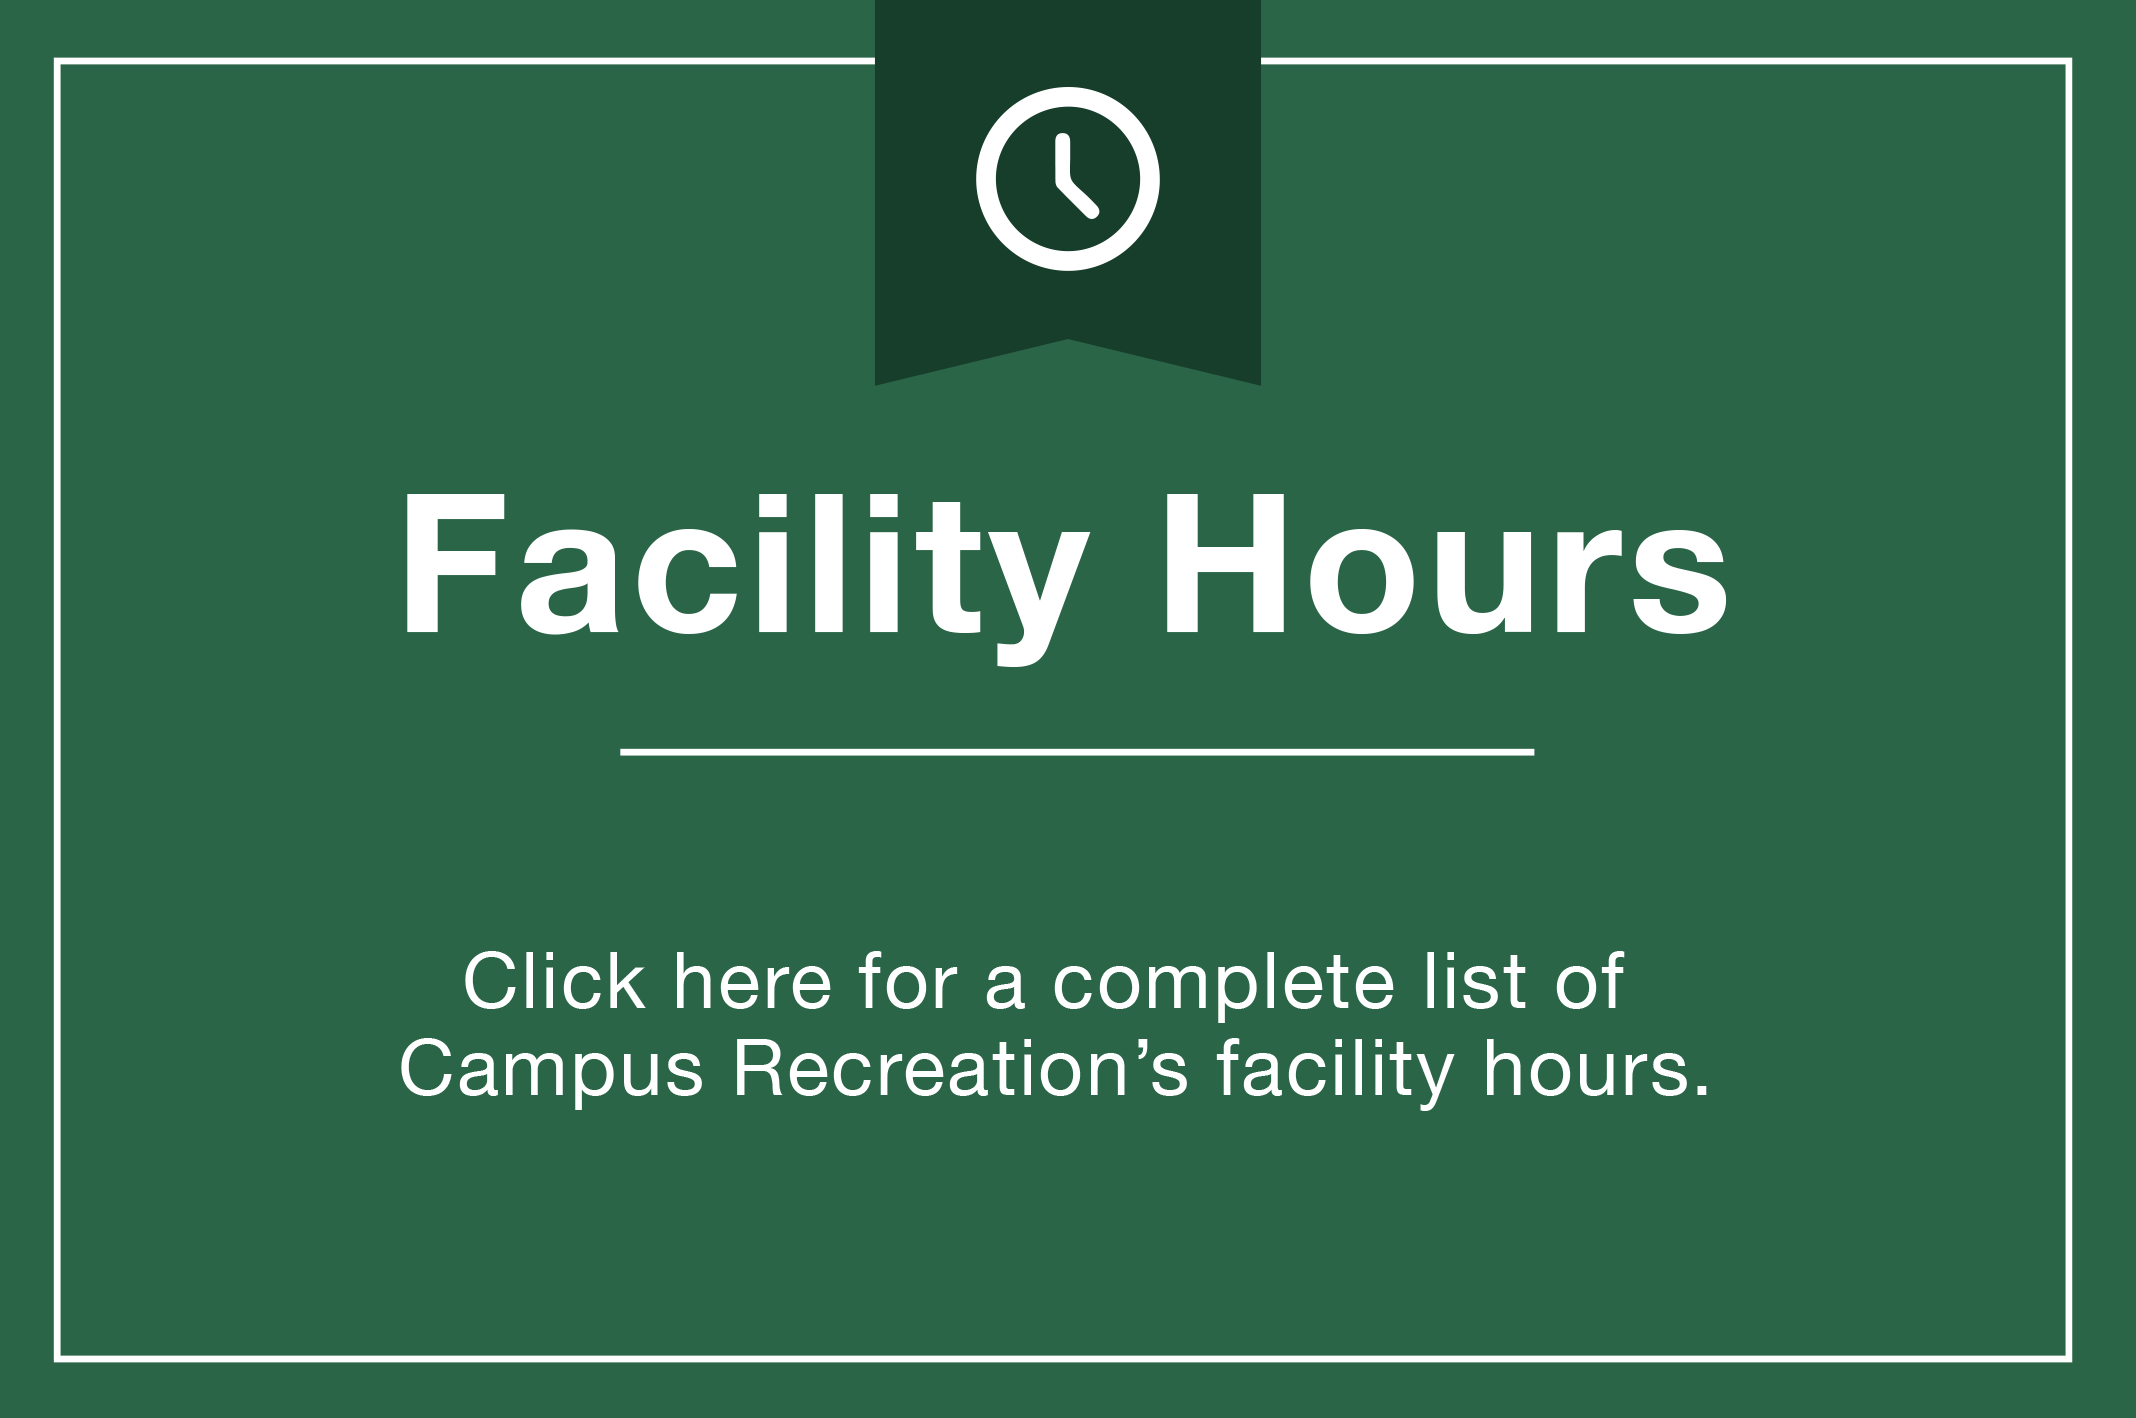 FACILITIES hours graphic